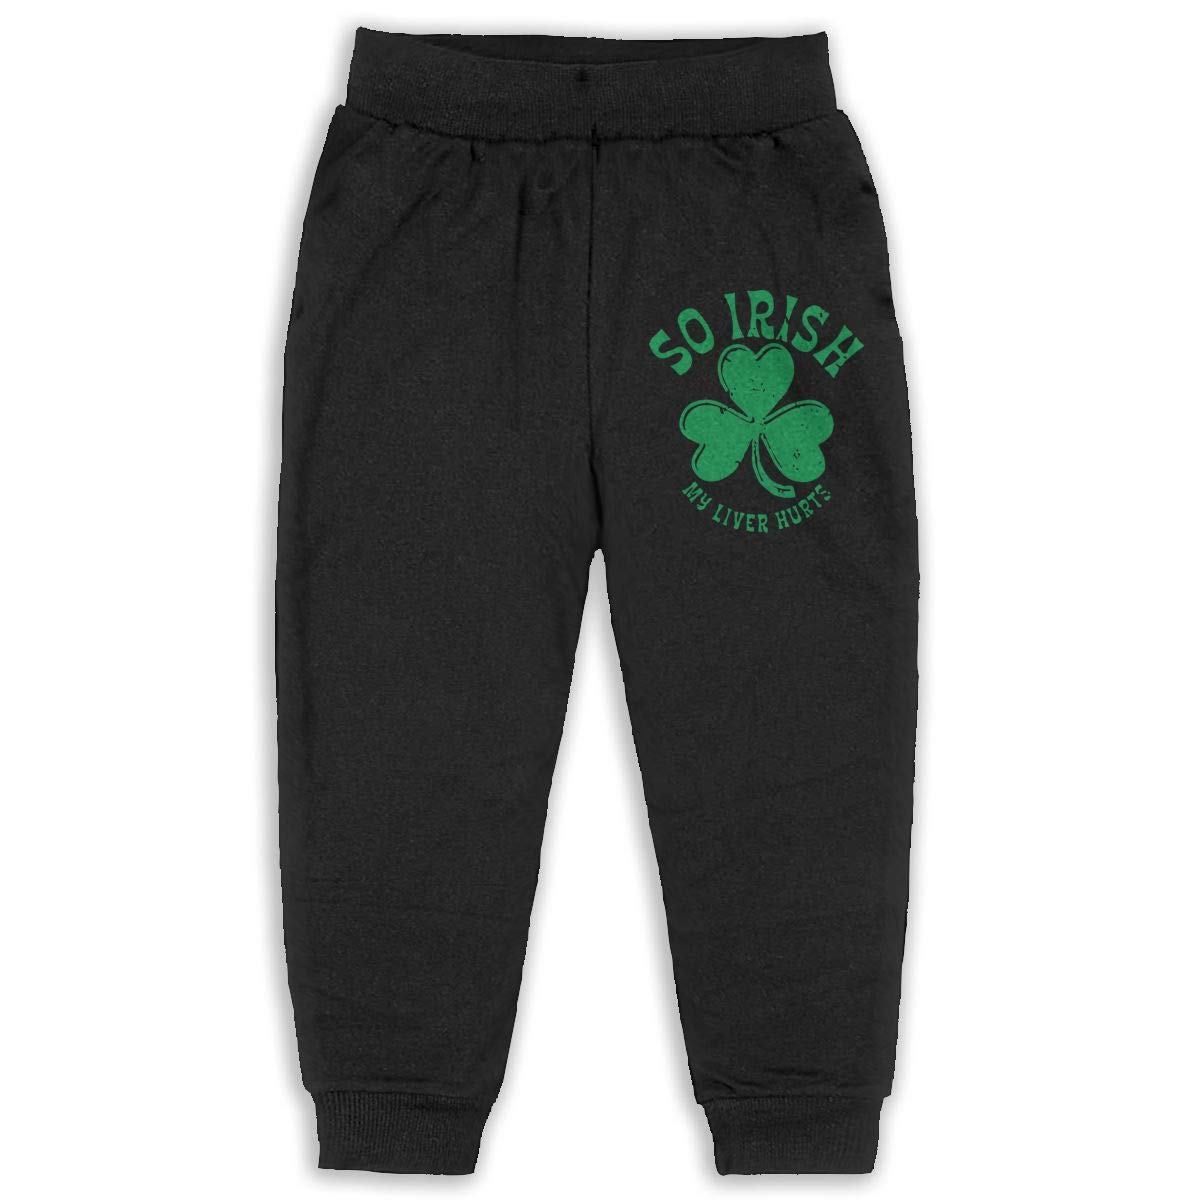 Udyi/&Jln-97 SO Irish My Liver Hurts Kids /& Toddler Sweatpants Soft Cozy Girls Boys Jersey Pant